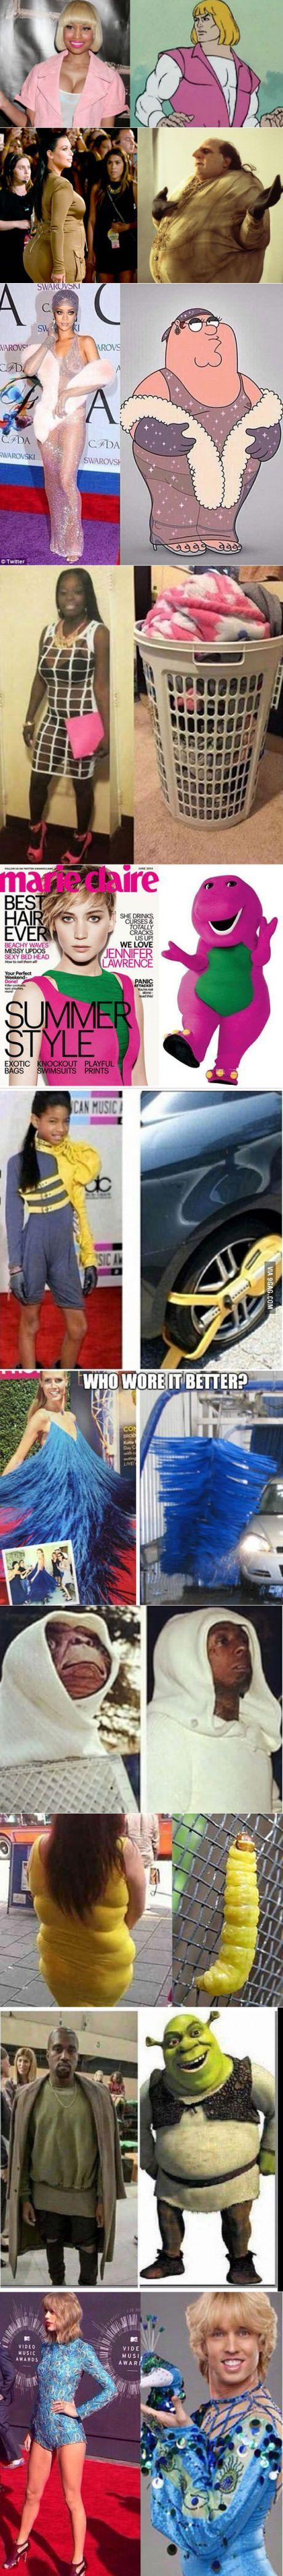 Who wore it better? http://ibeebz.com